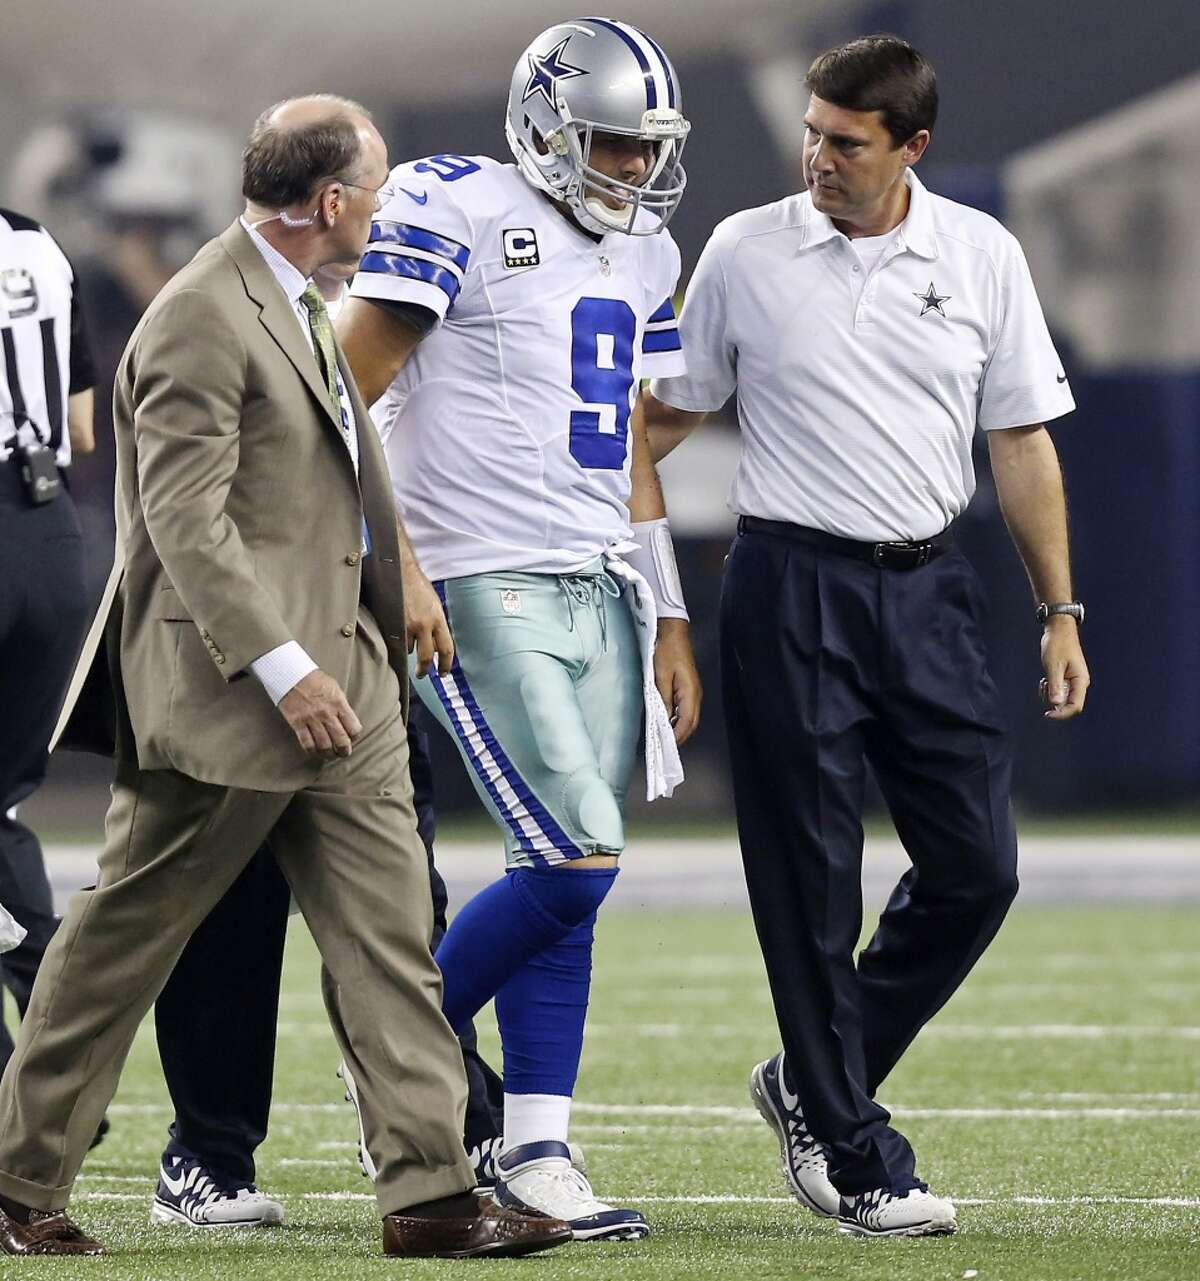 Dallas Cowboys' Tony Romo (center) walk off the field after being injured on a play during first half action against the New York Giants Sunday Sept. 8, 2013 at AT&T Stadium in Arlington, Tx.